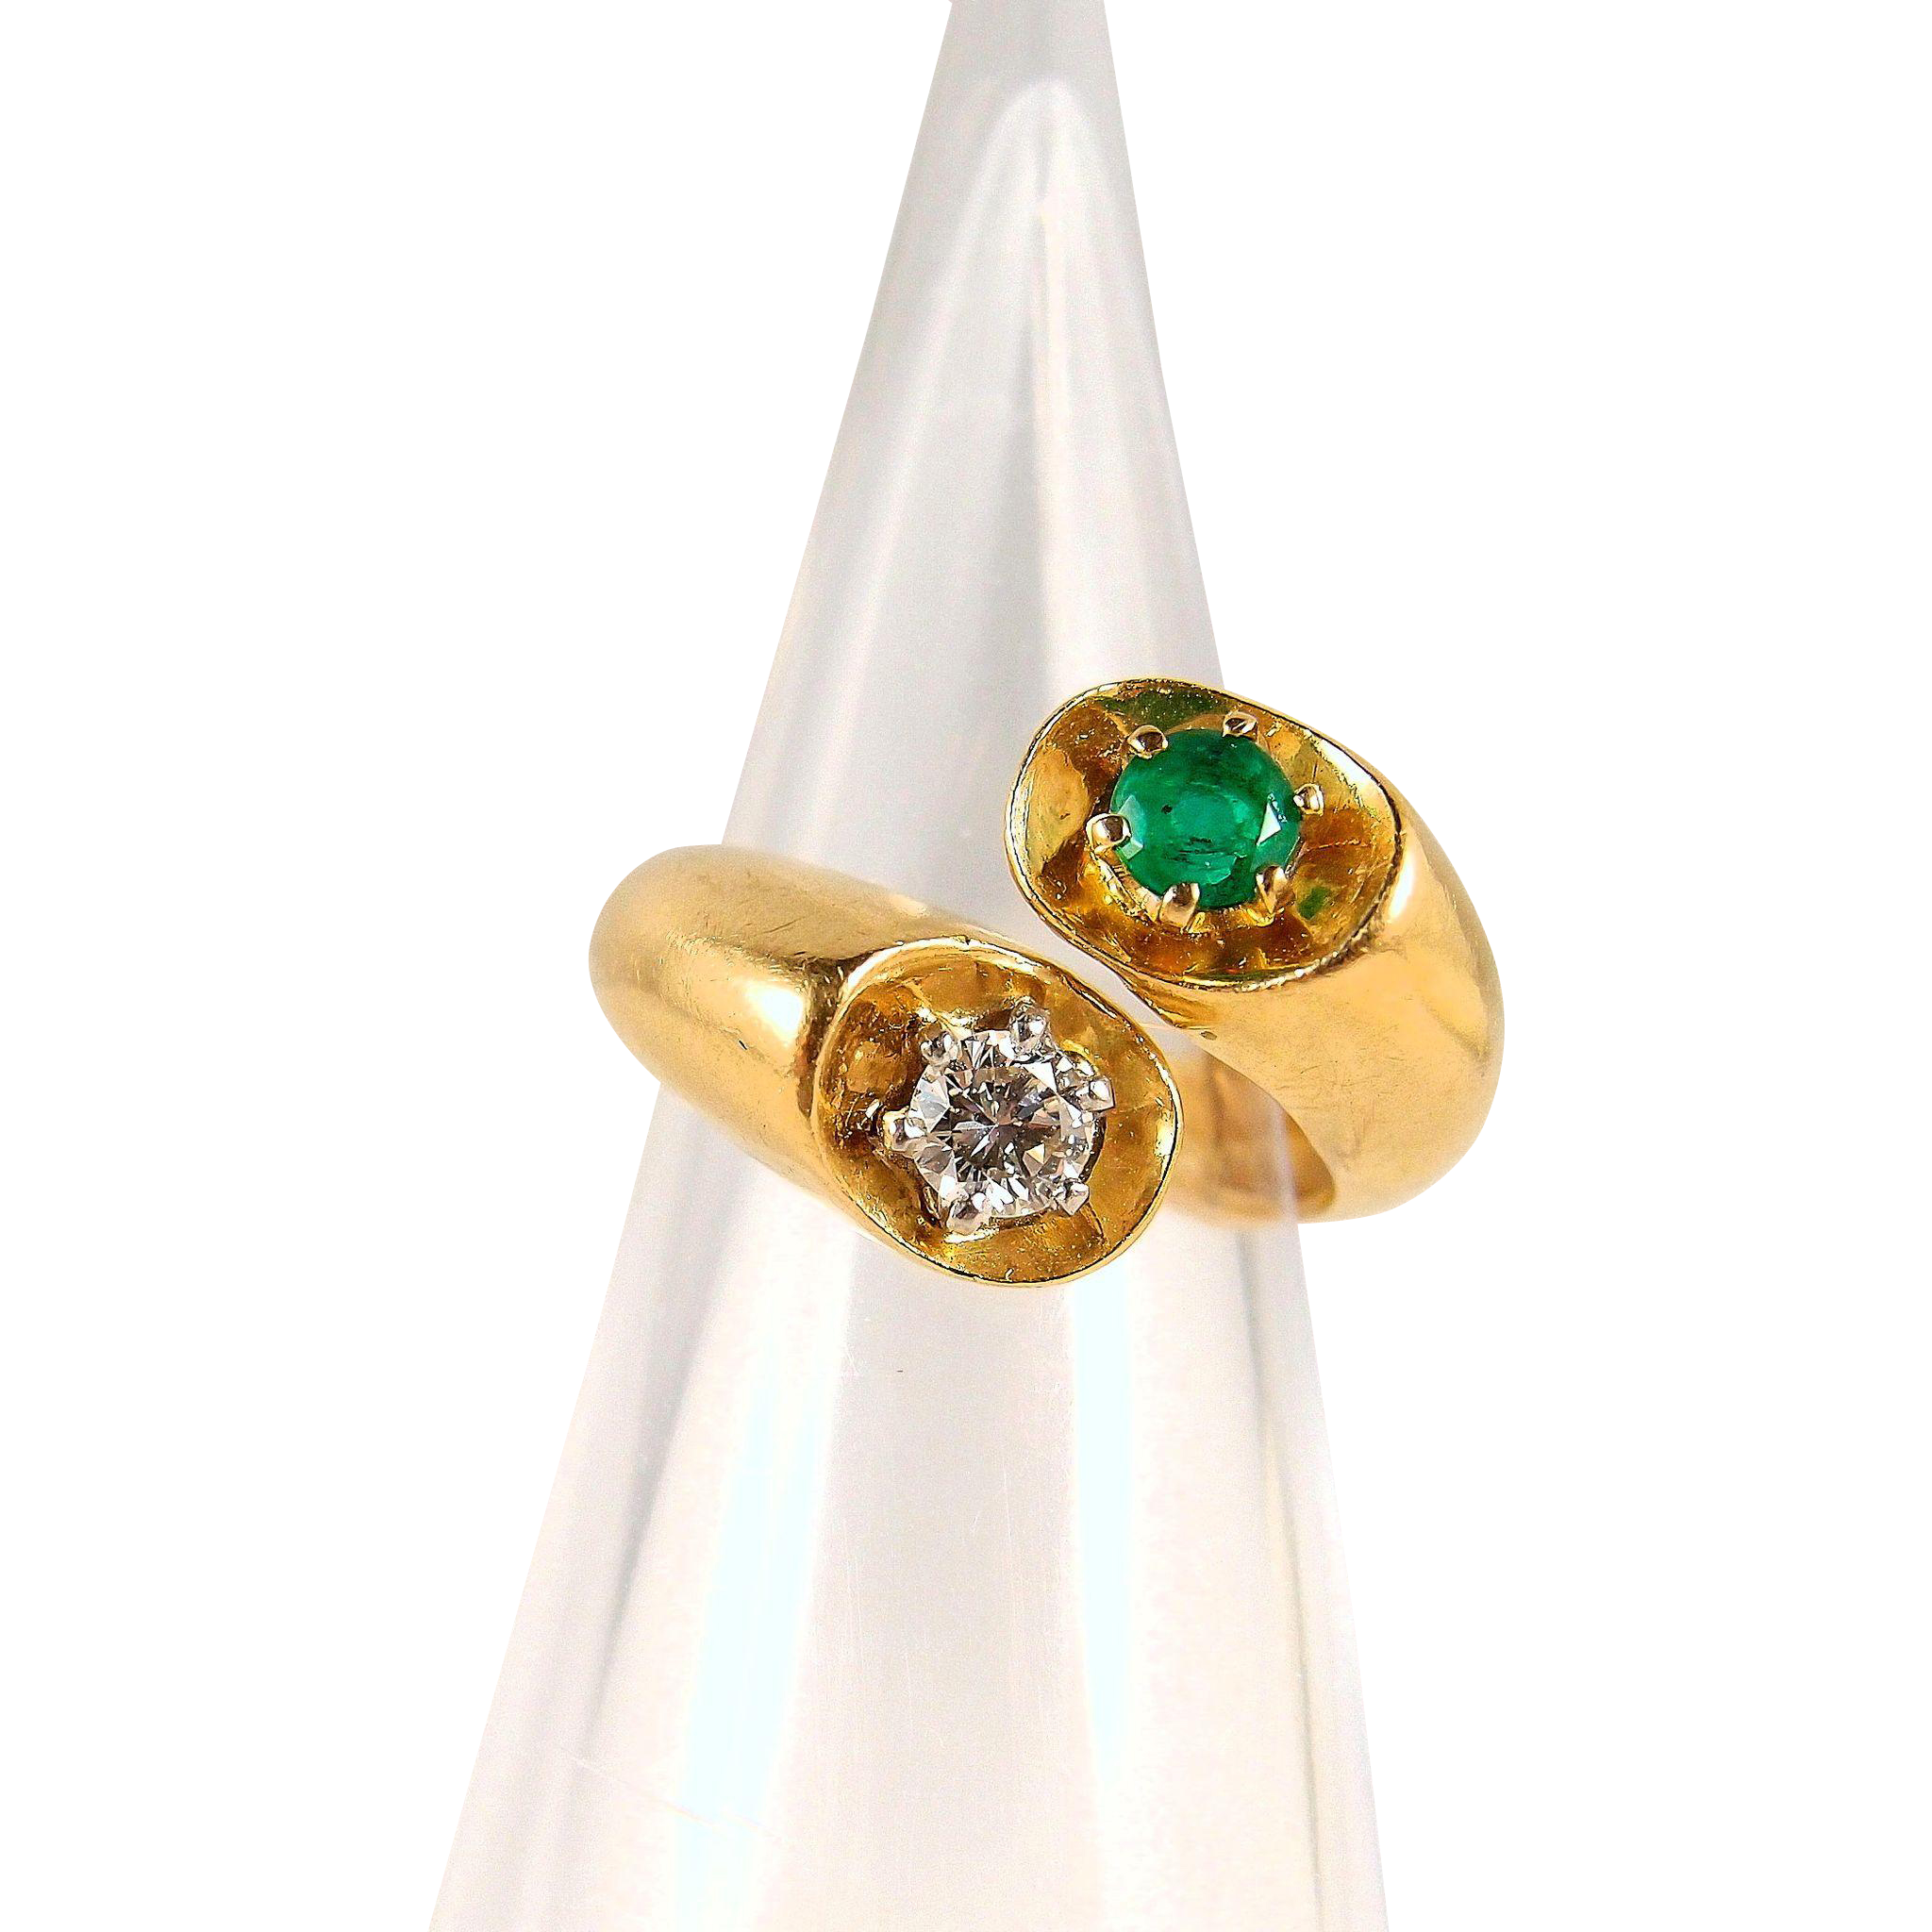 rings product vintage dsc la artisan emerald ring emeral